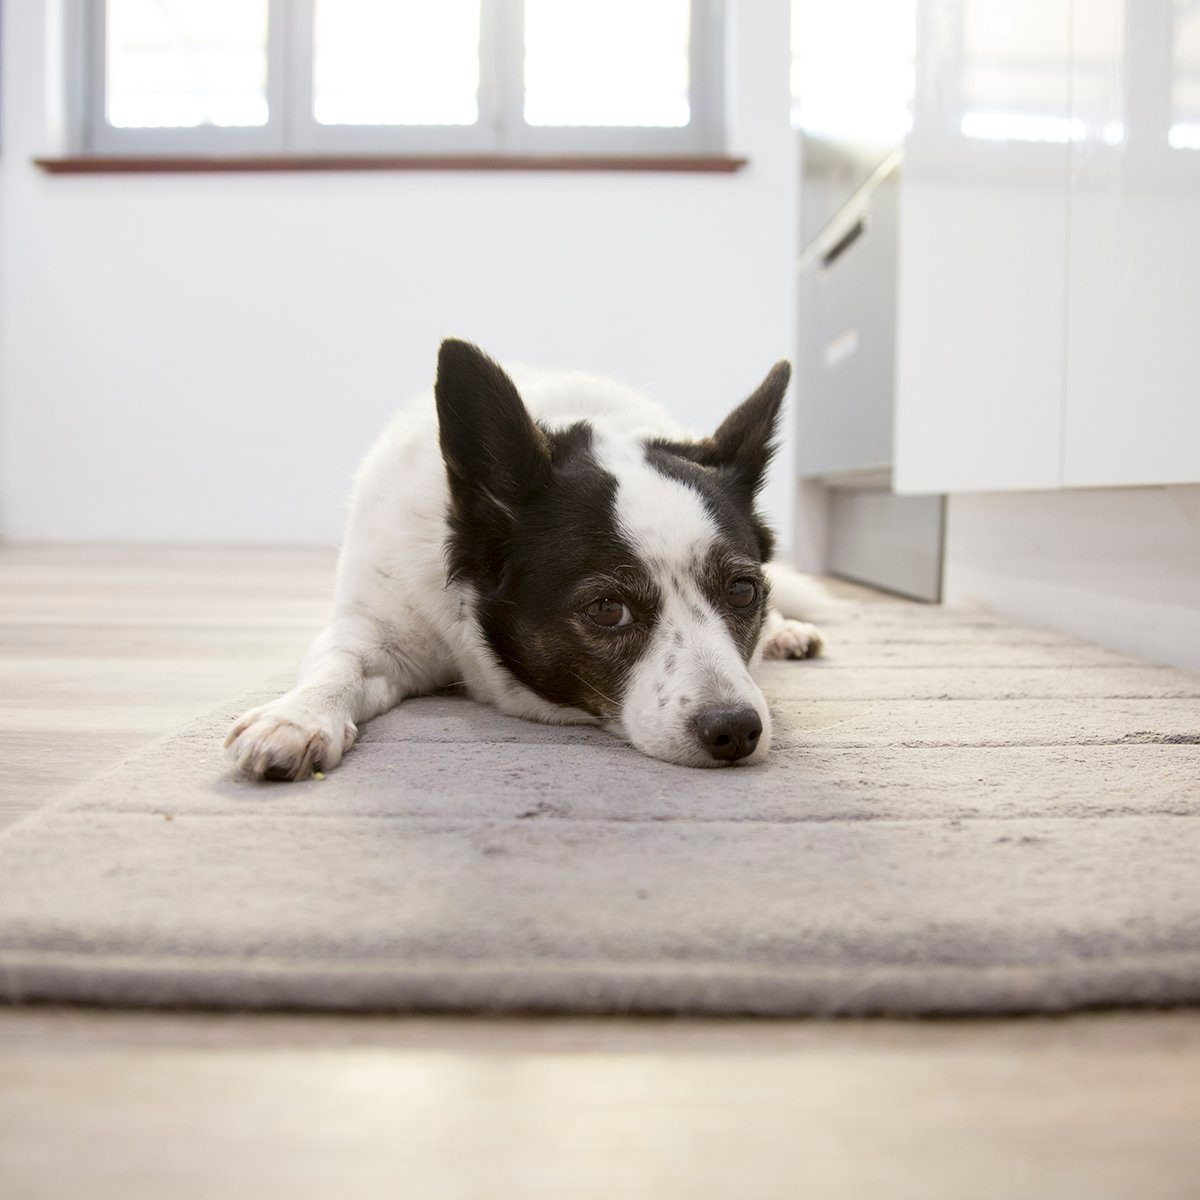 A little dog lying on the floor inside. Copy Space